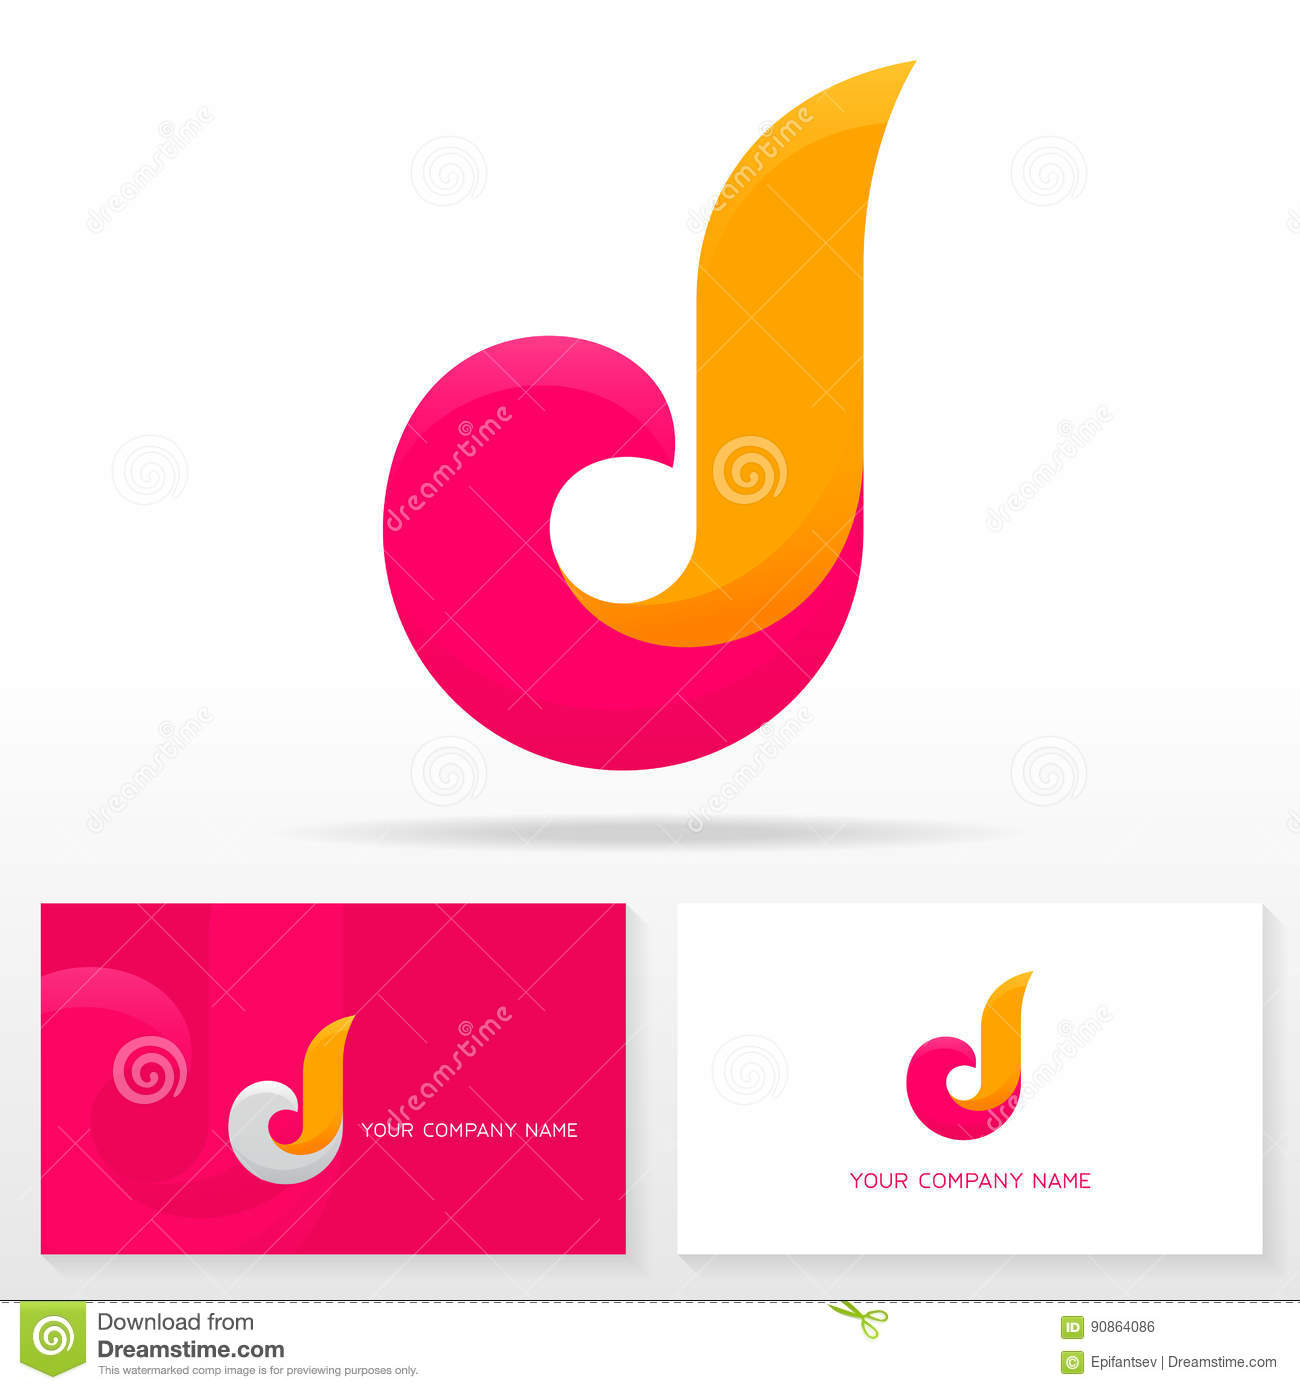 Letter d logo design vector sign stock vector illustration of letter d logo design vector sign thecheapjerseys Choice Image